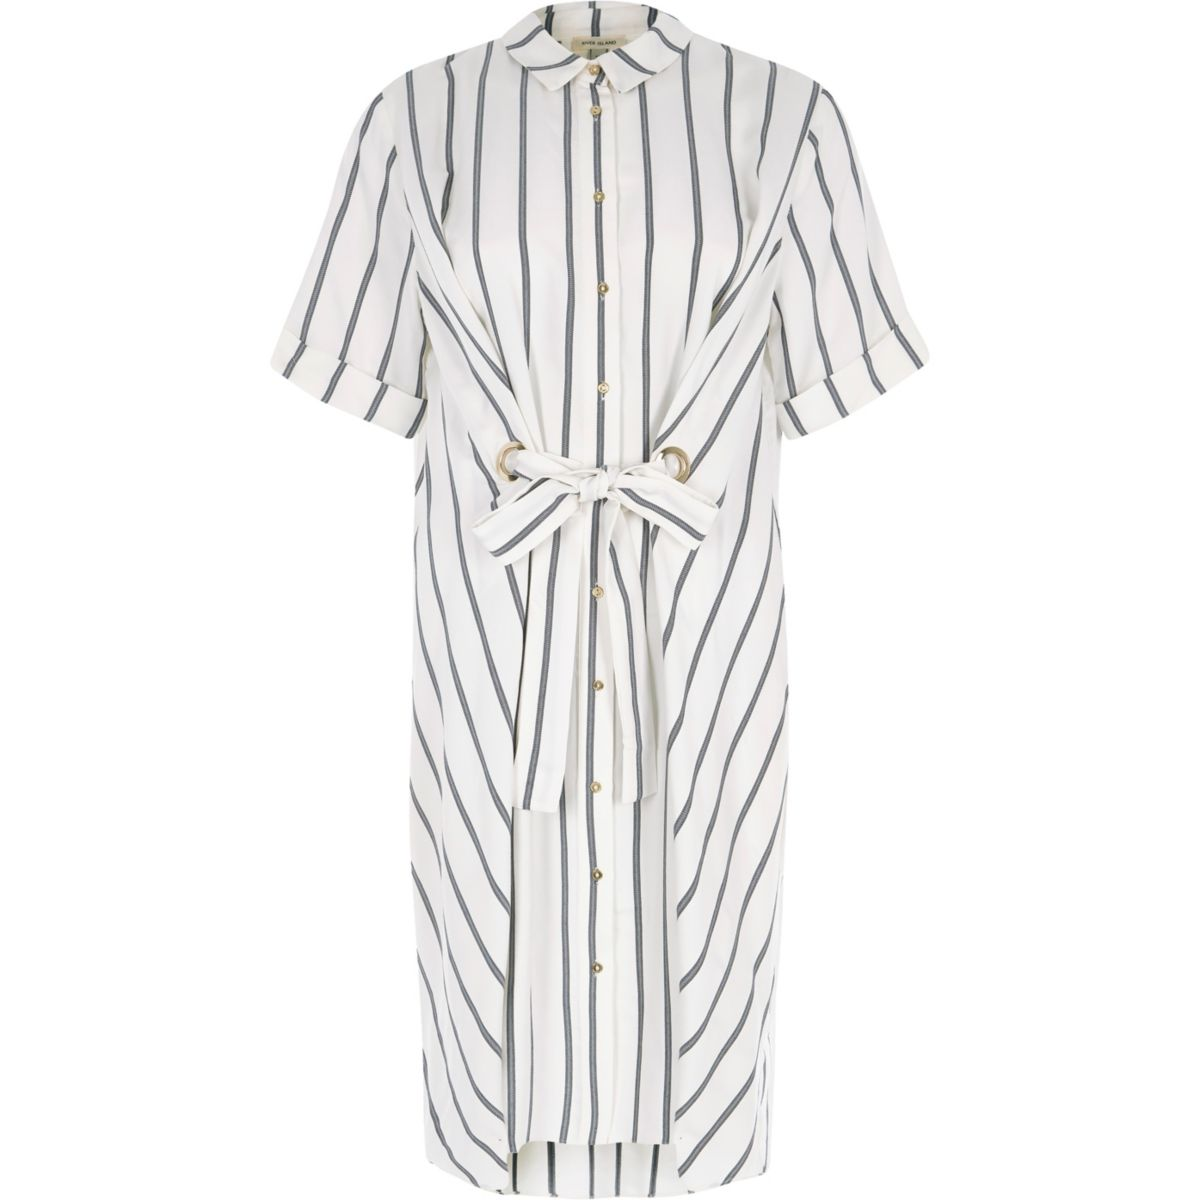 White stripe eyelet tie front shirt dress